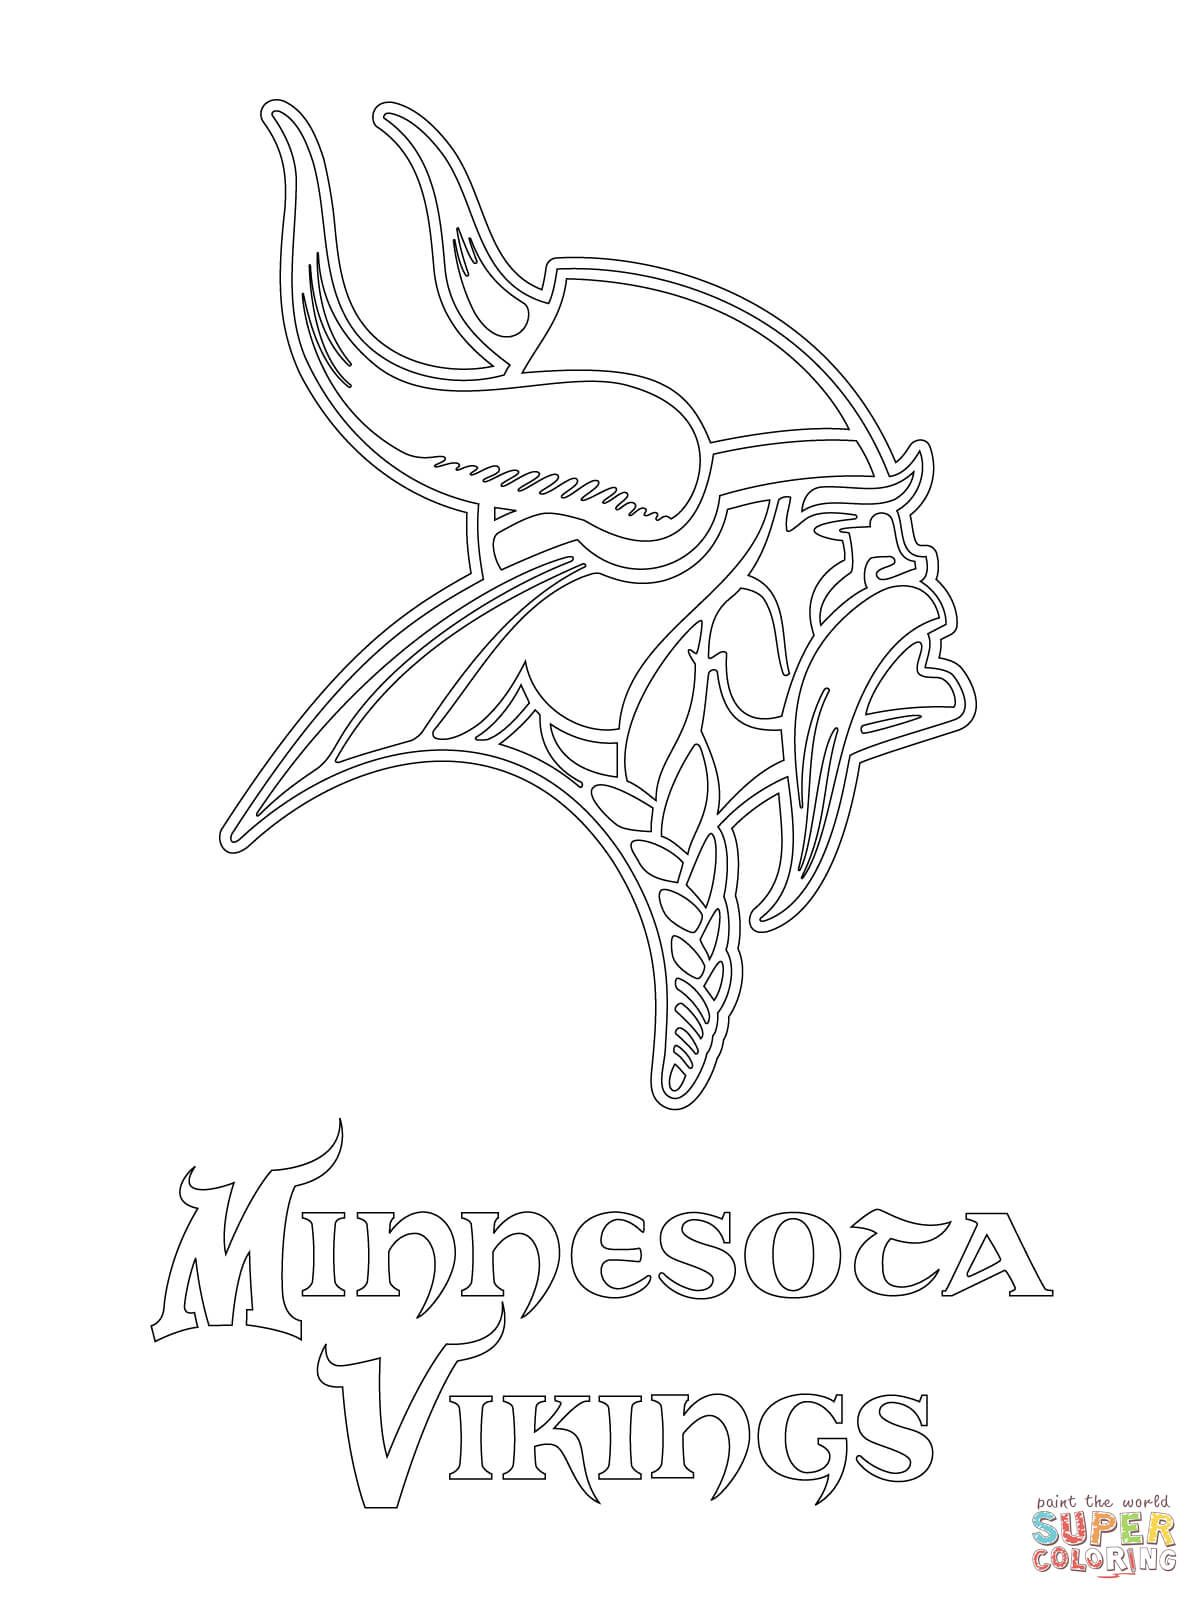 Minnesota Vikings Logo Coloring Page From NFL Category. Select From 27252  Printable Crafts Of Cartoons